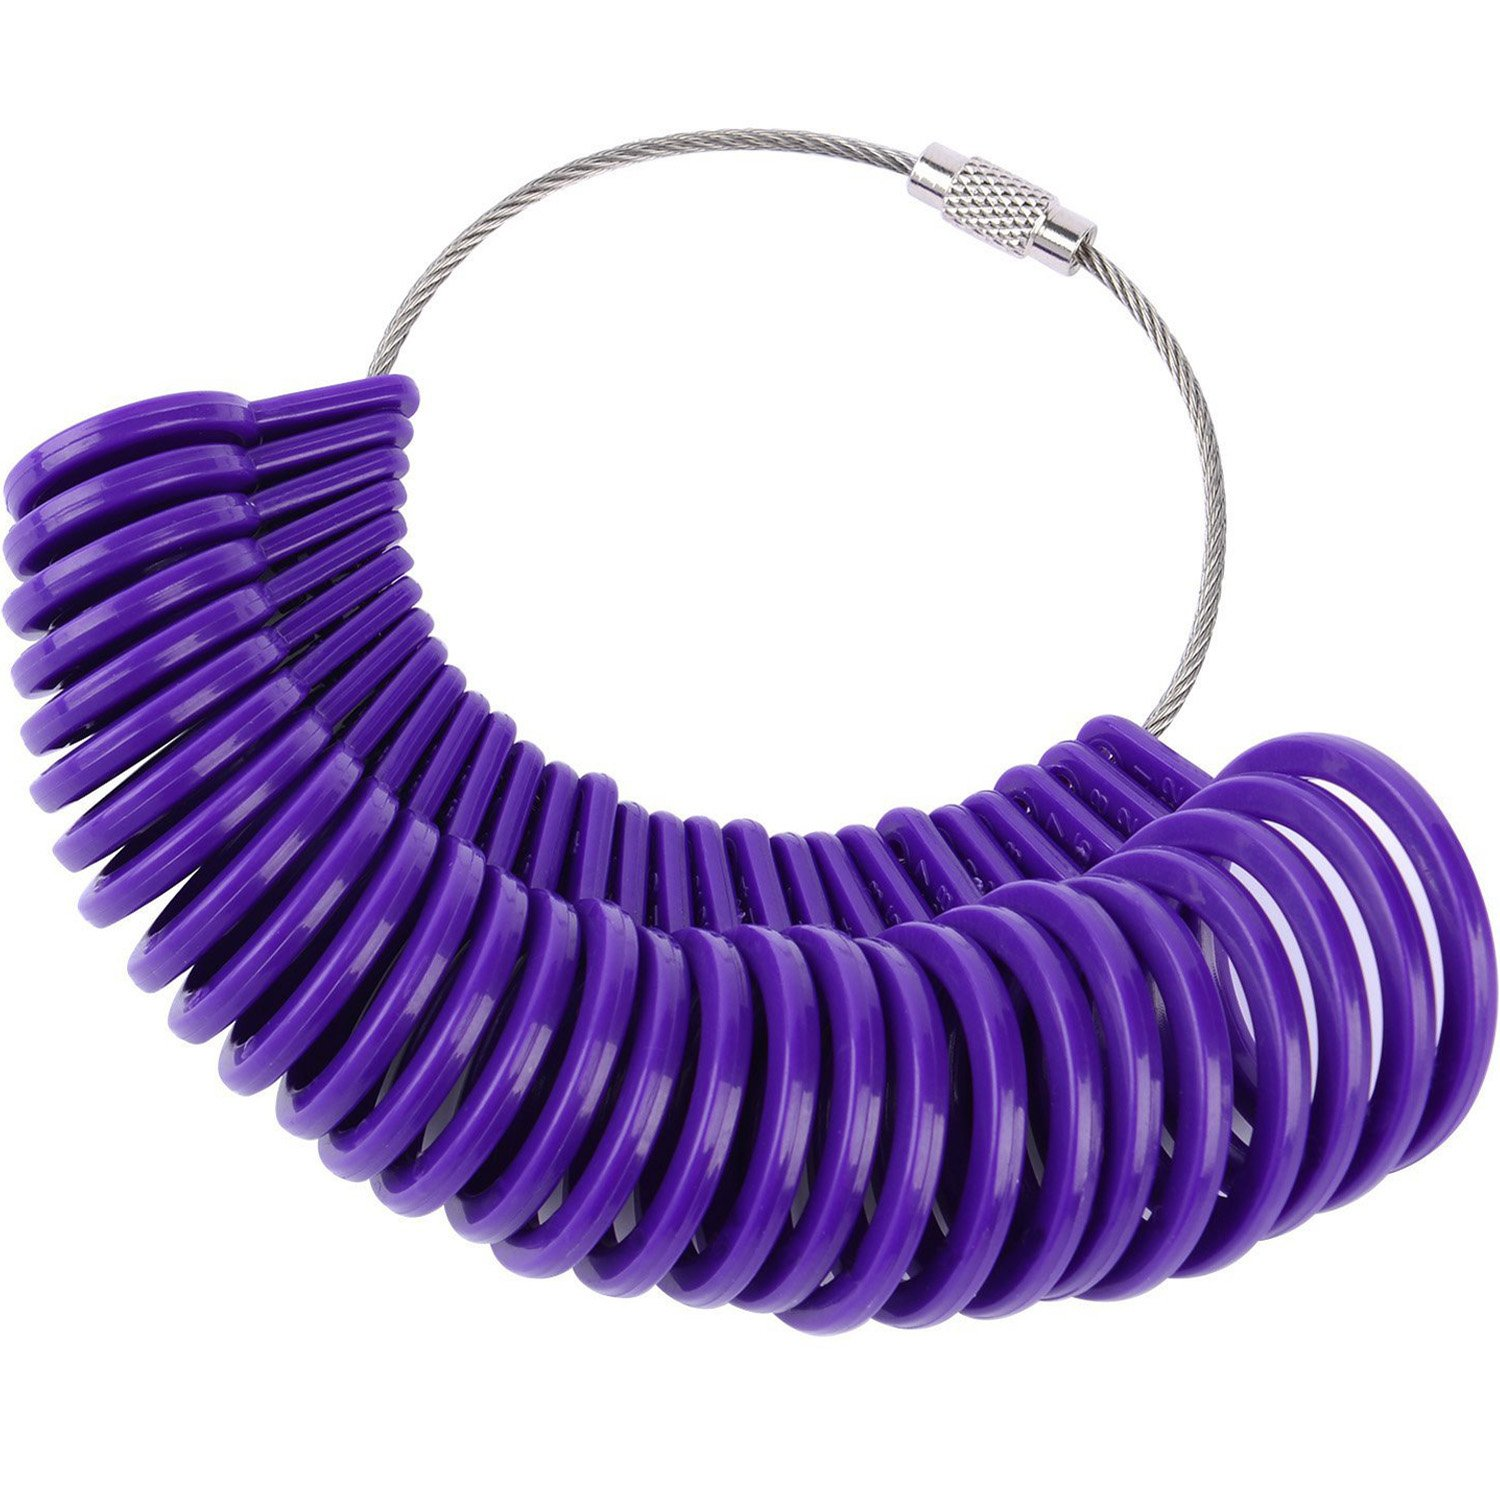 27 Pieces Plastic Ring Sizer Gauges A-Z Finger Sizer Measuring Ring Tool Jewellery Kit (Purple) Shappy Others